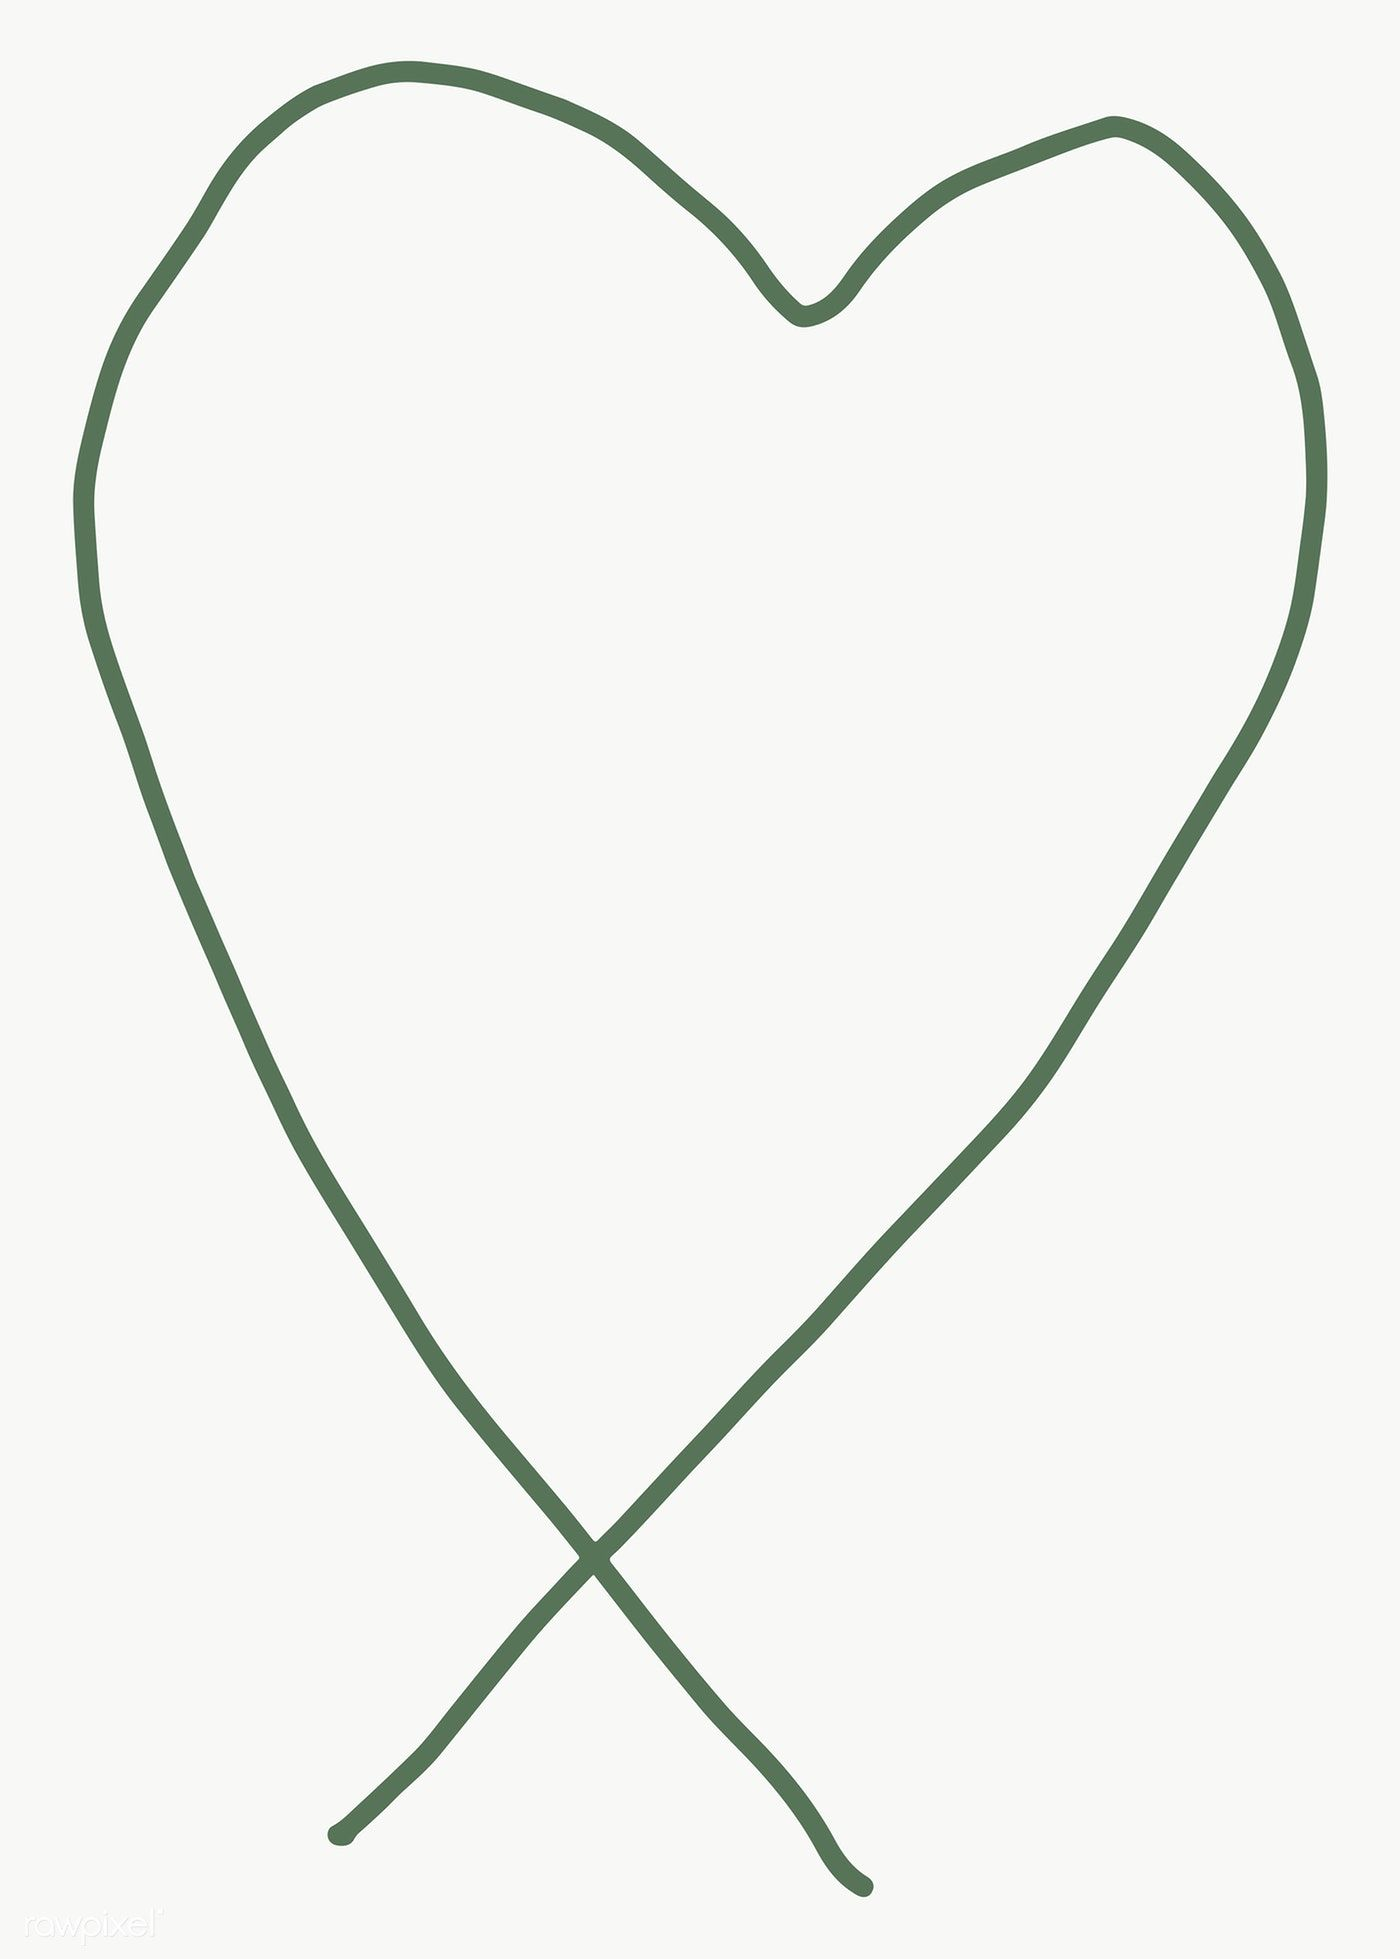 Green Heart Shape Element Transparent Png Free Image By Rawpixel Com Marinemynt Heart Shapes Png Free Png